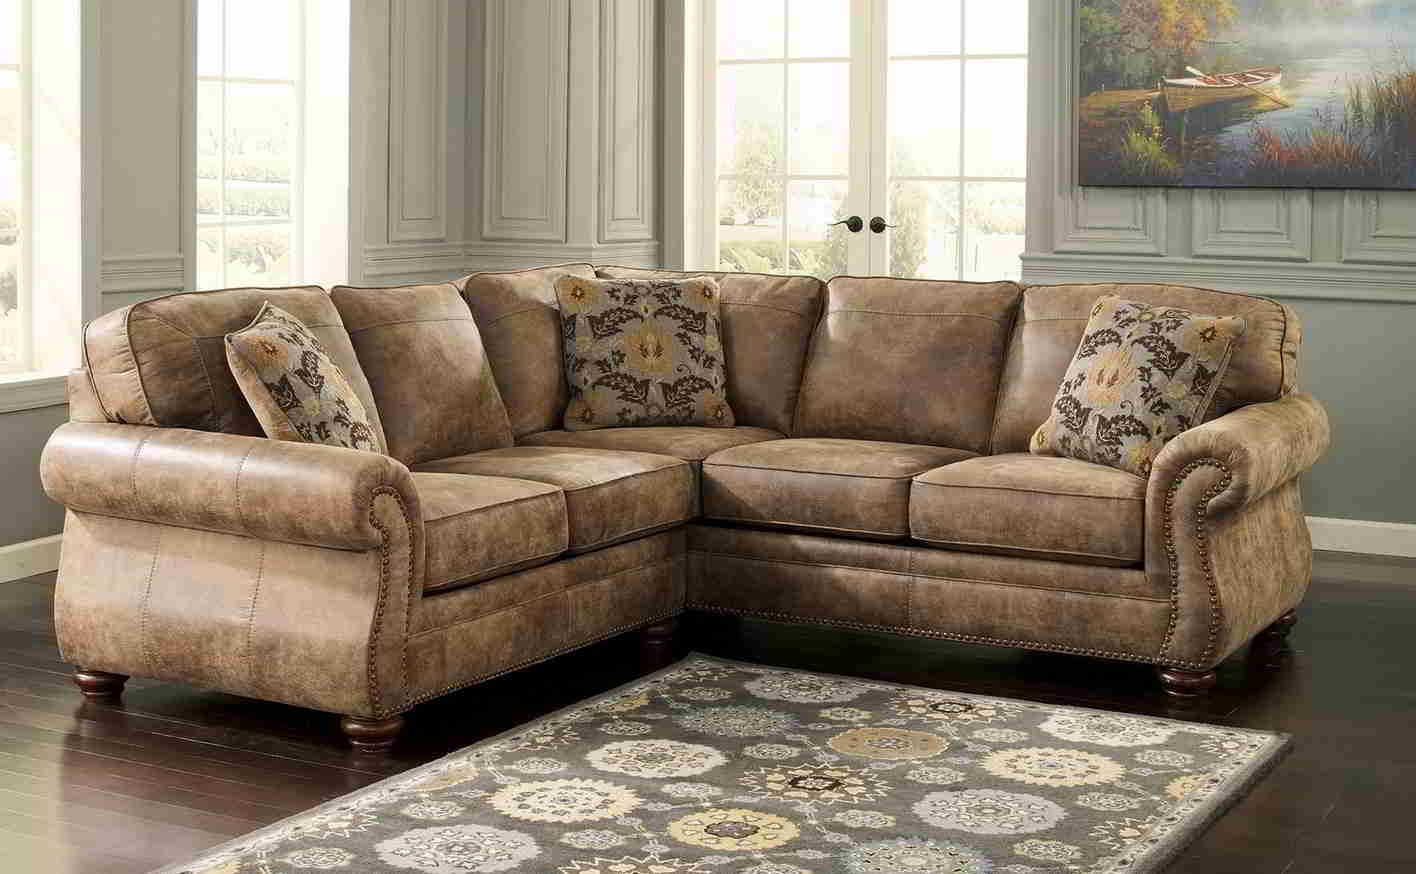 12 Photo Of Diana Dark Brown Leather Sectional Sofa Set